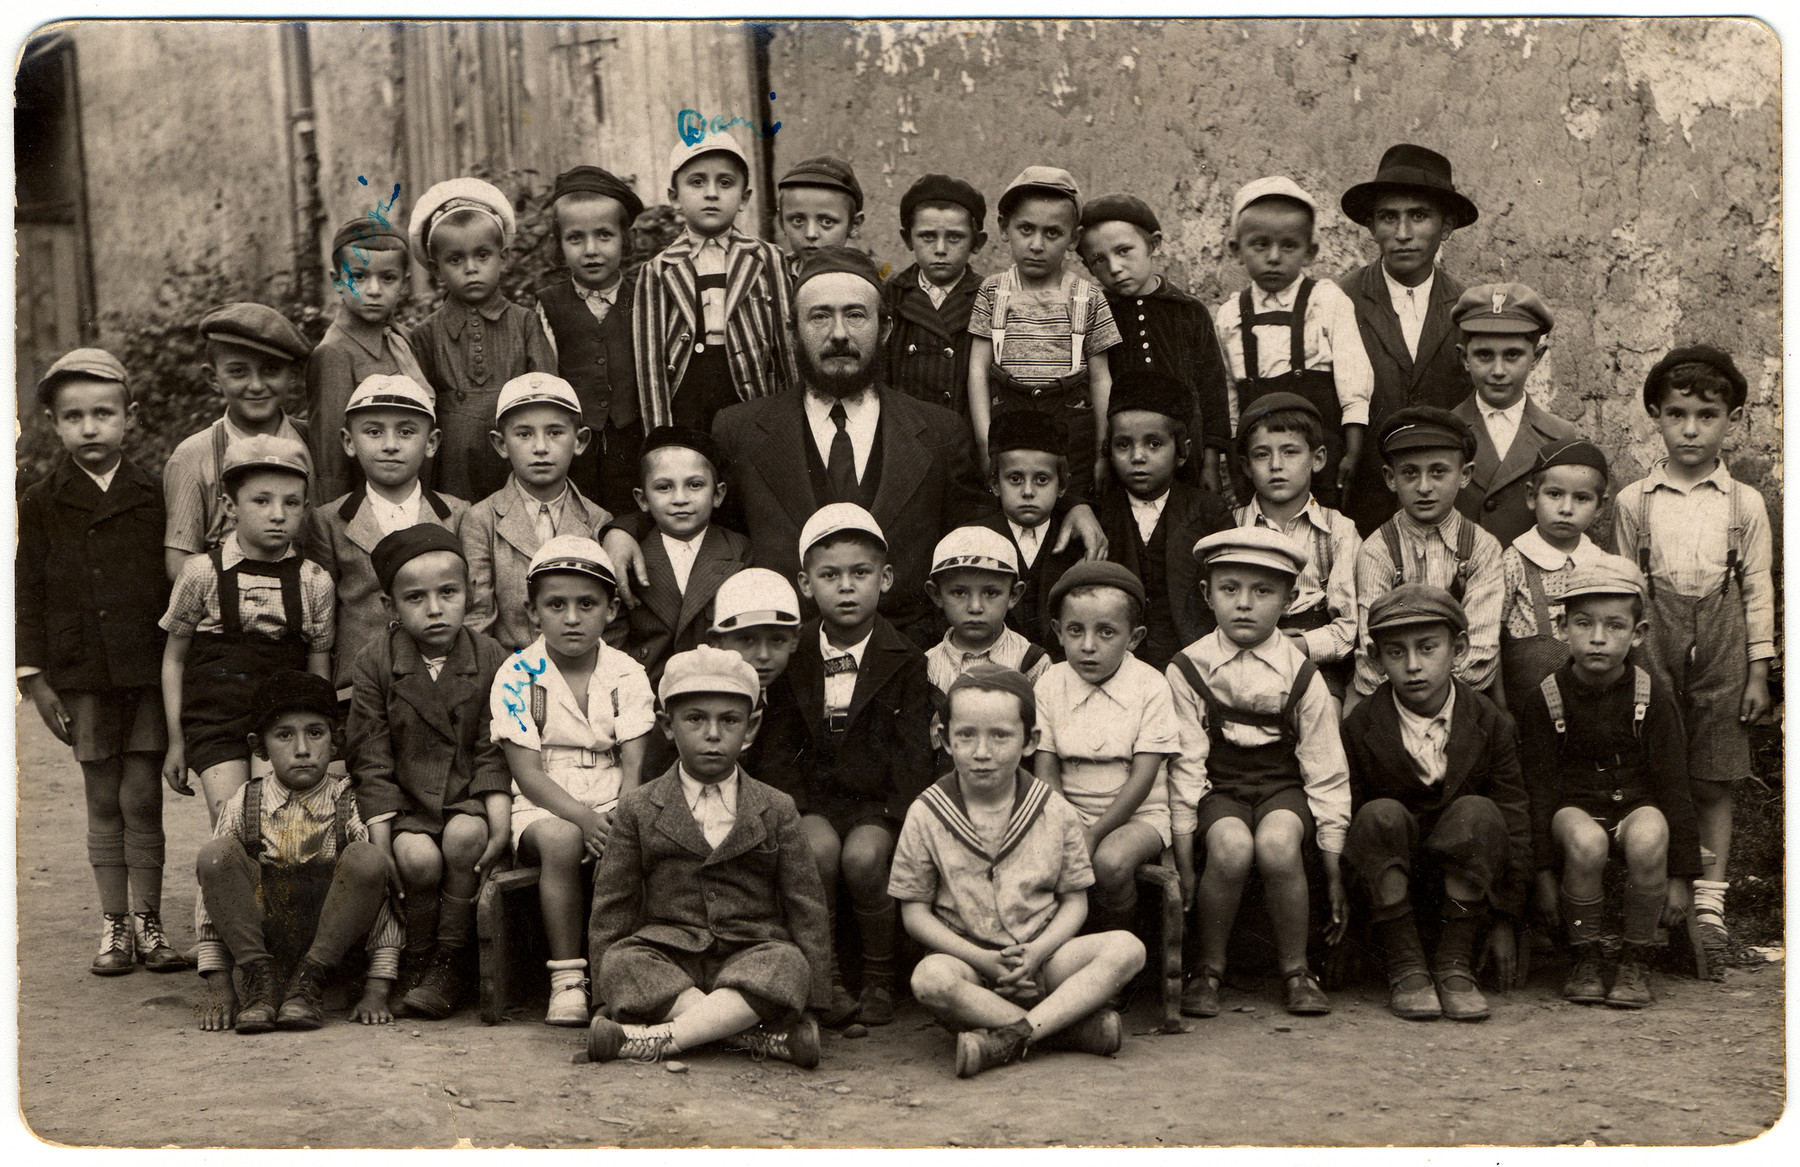 Group portrait of young boys in a cheder in Mukachevo.    Among those pictured is Aharon (Ari) Friedman (seated on the bench, second from the left).  Daniel Friedman (his cousin) is in the top row in the striped jacket.